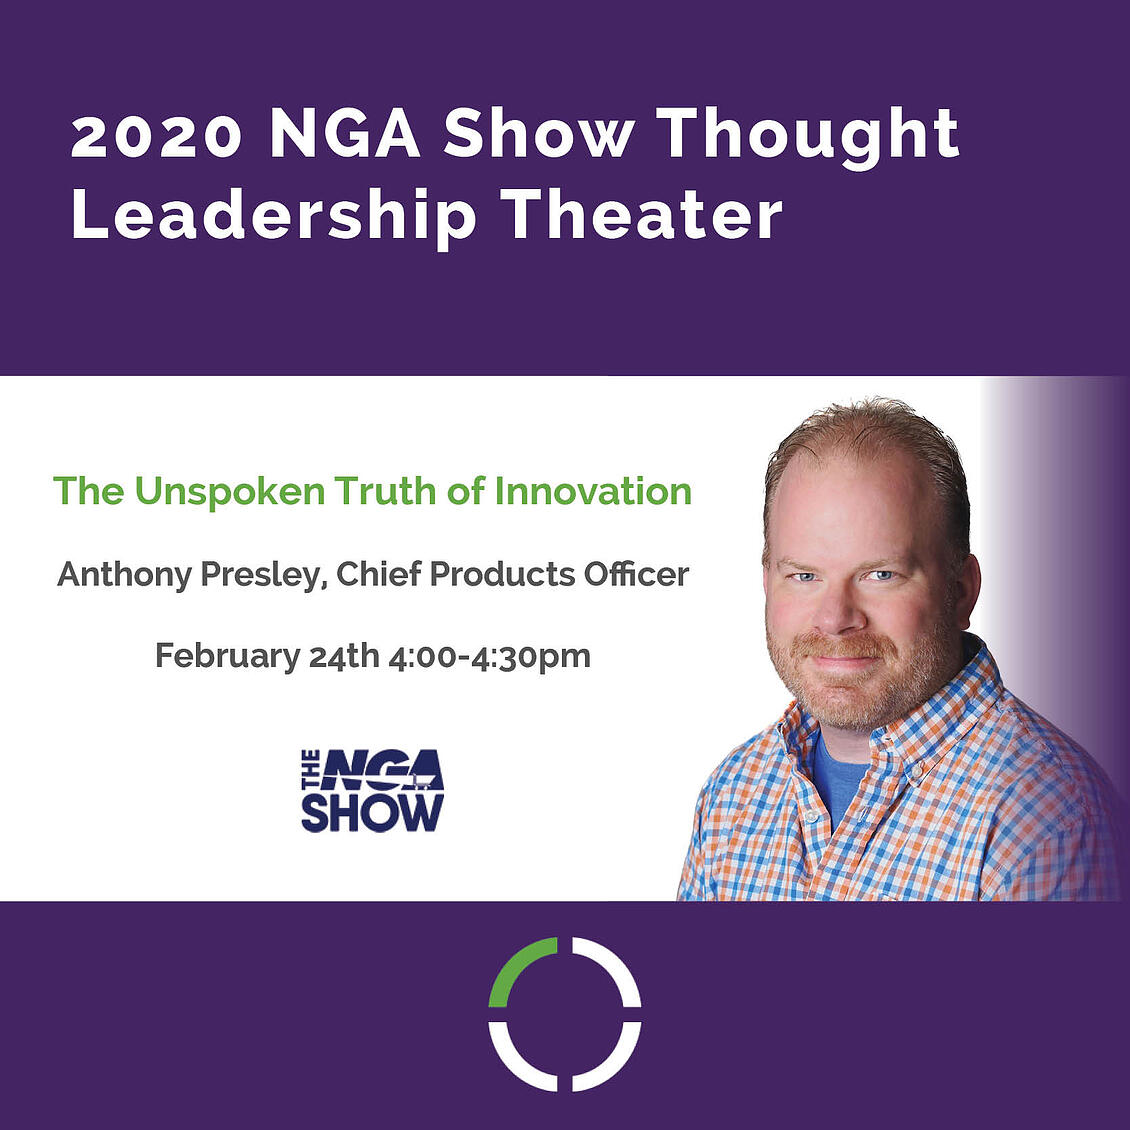 TRUNO Selected to Speak on Technology Innovation at the 2020 NGA Show